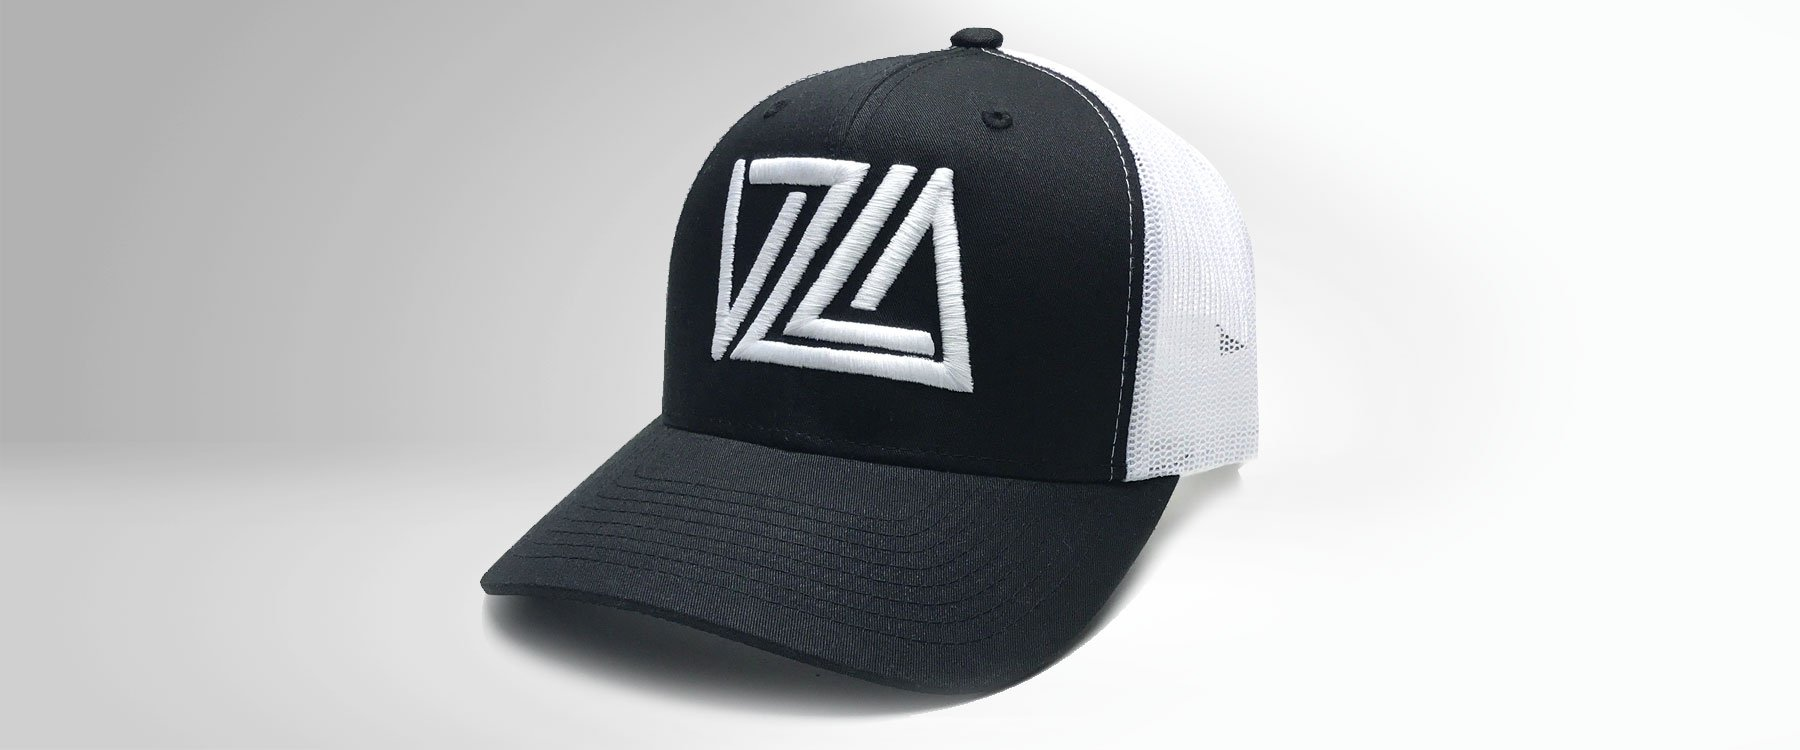 Vzla trucker hat White/Black